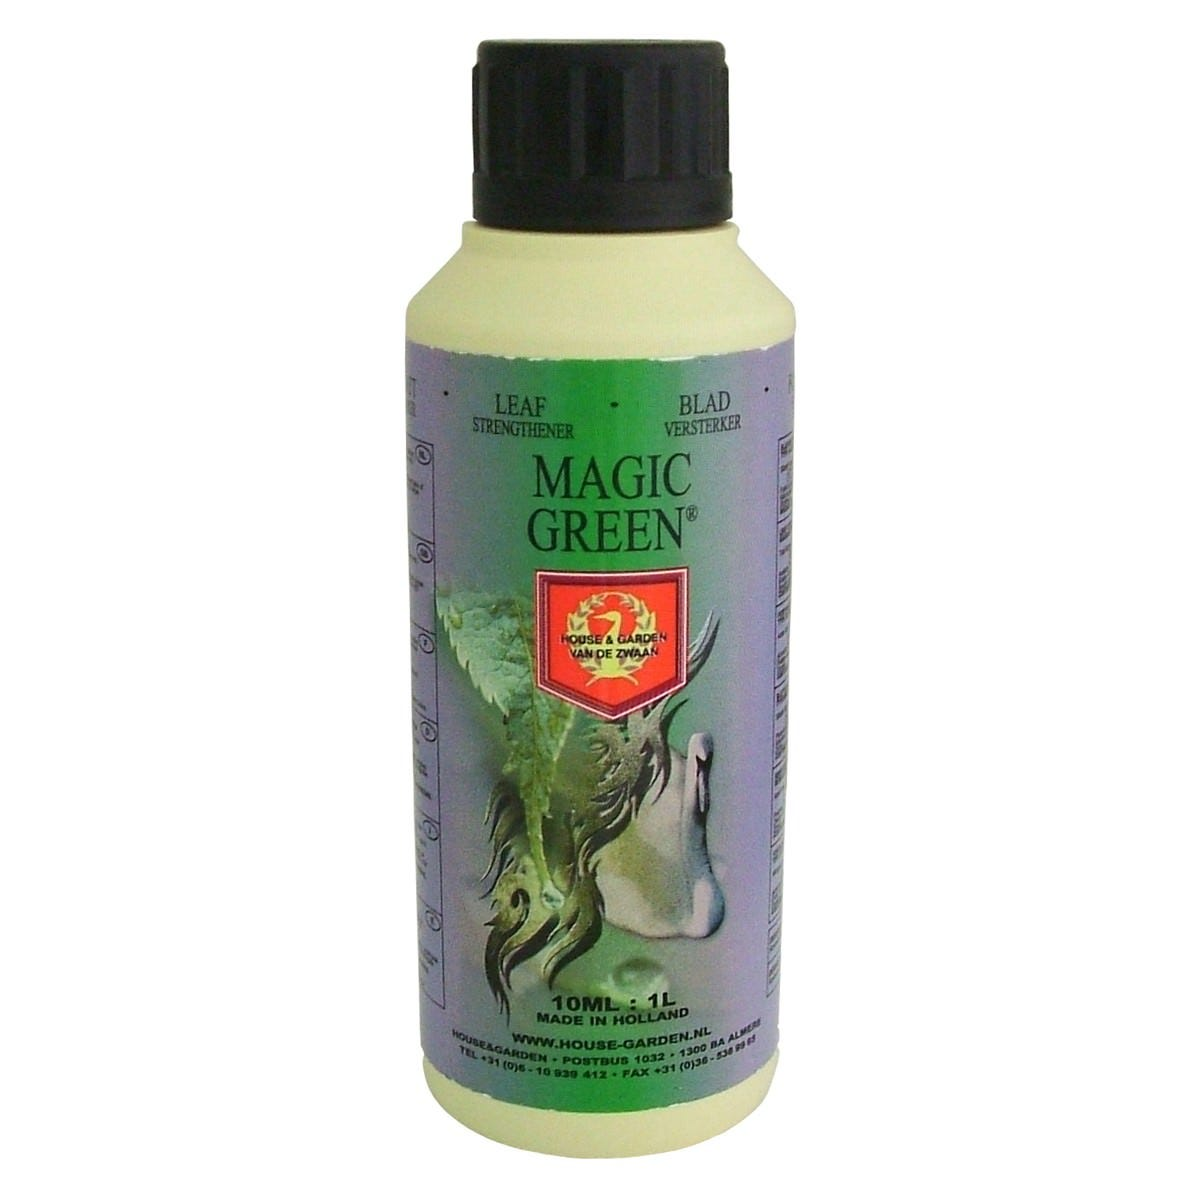 House & Garden - Magic Green Magic Green is a foliar spray used to increase vitality and ensure that the plants get what they need for a successful flowering period. Use on rooted sprouts, cuttings and mother plants up to once a week during the growth phase. Foliage will turn to a vibrant, dark green color and a waxy layer will form on the leafs. Derived From: Ammonium Nitrate, Nitric Acid, Potassium Oxide, and Phosphoric Acid. Ingredients Explained: This product will nourish your plants from the outside in, helping to green-up plants in all phases of growth. Magic Green helps provide plants with extra vitality, helping to prepare them for a successful flowering period. House & Garden maintains their own nutrient manufacturing facility as well as their own laboratories where they continually test each batch of fertilizer they produce. This ensures that gardeners employing House & Garden receive high quality, consistent products. Application: Apply 1-2 ml per liter of spraying solution, 1-2 times per weeks just after the lights have been switched off.